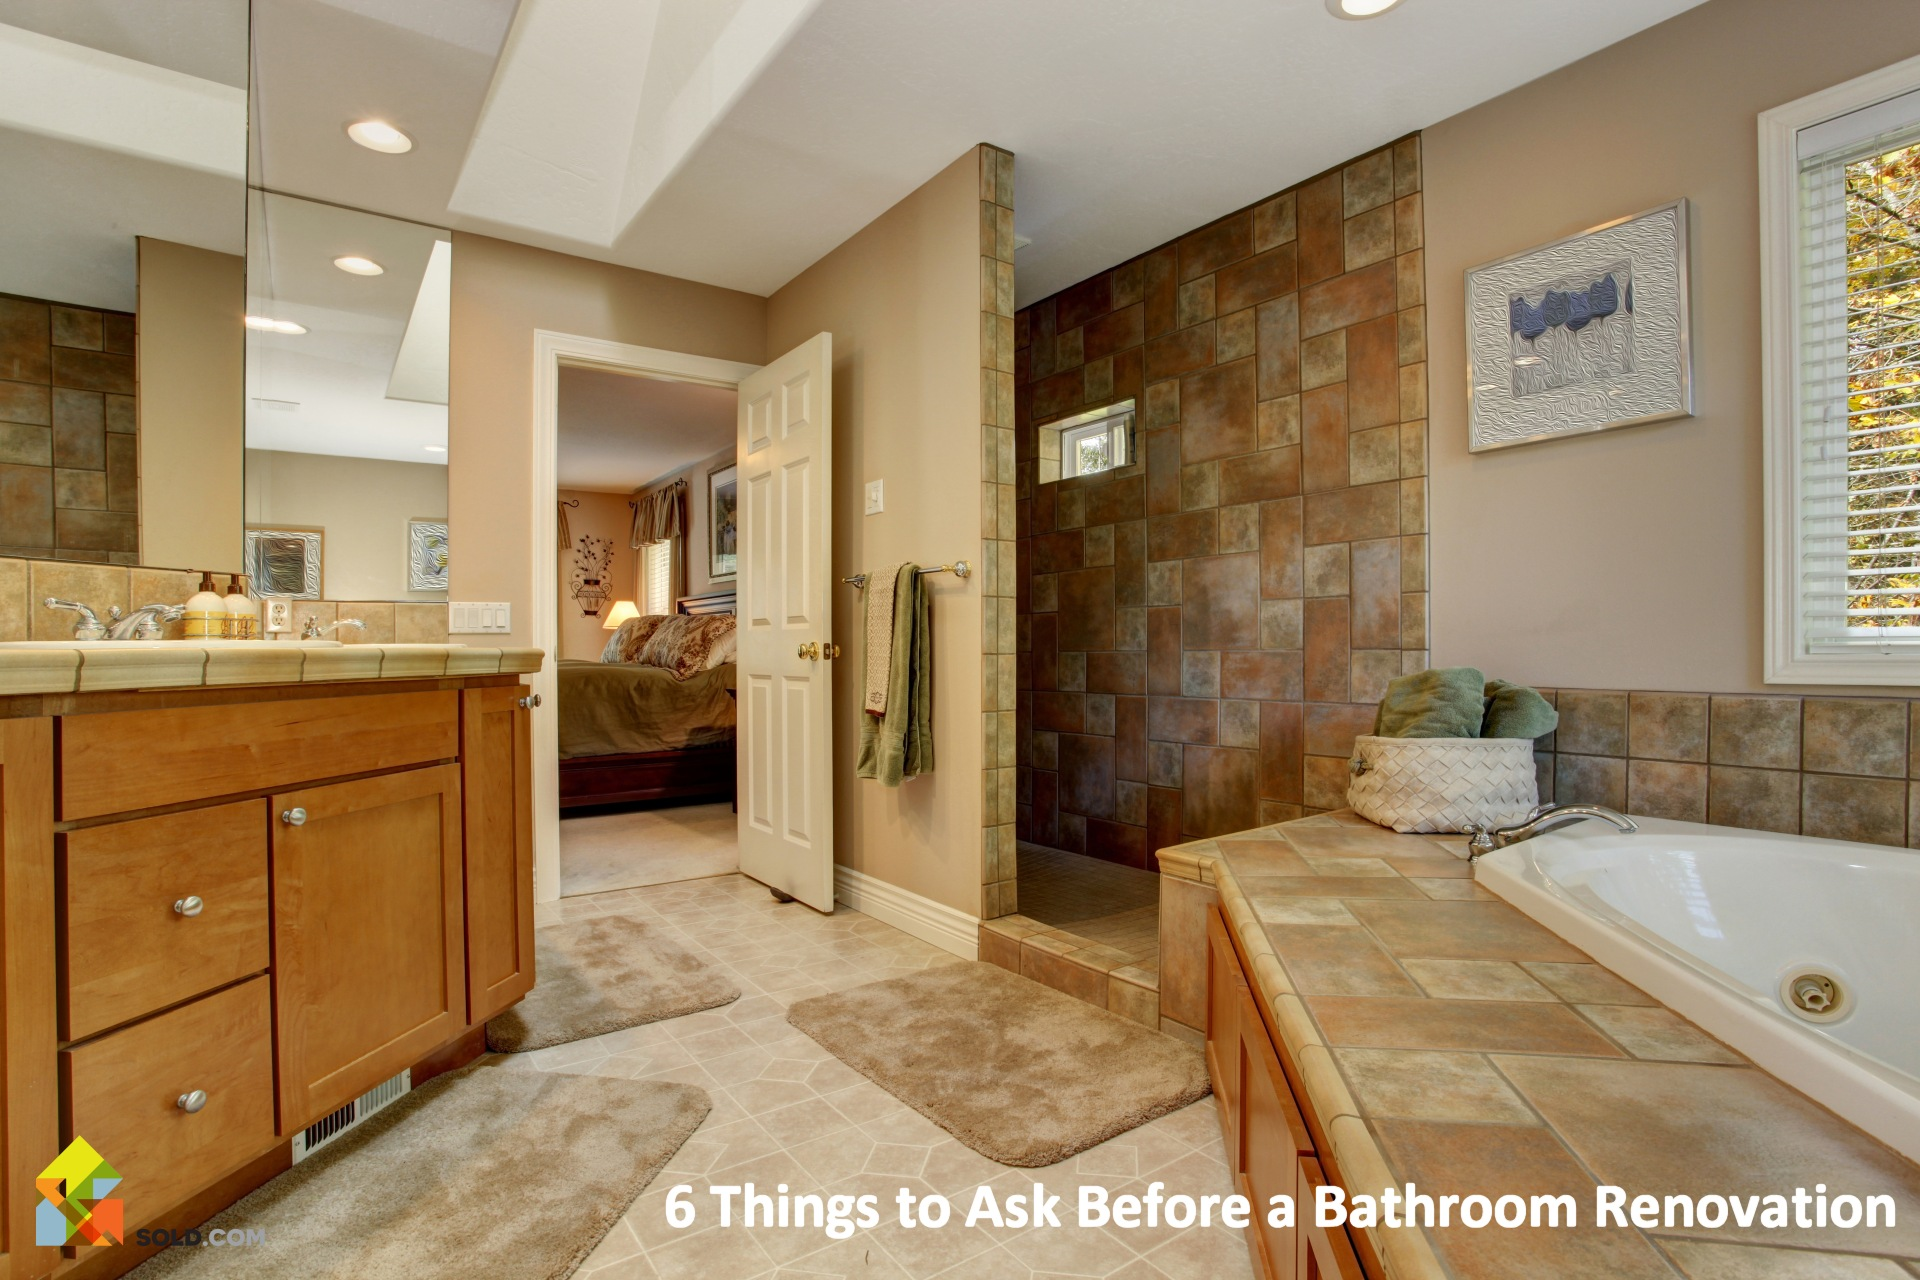 6 Things to Ask Before a Bathroom Renovation